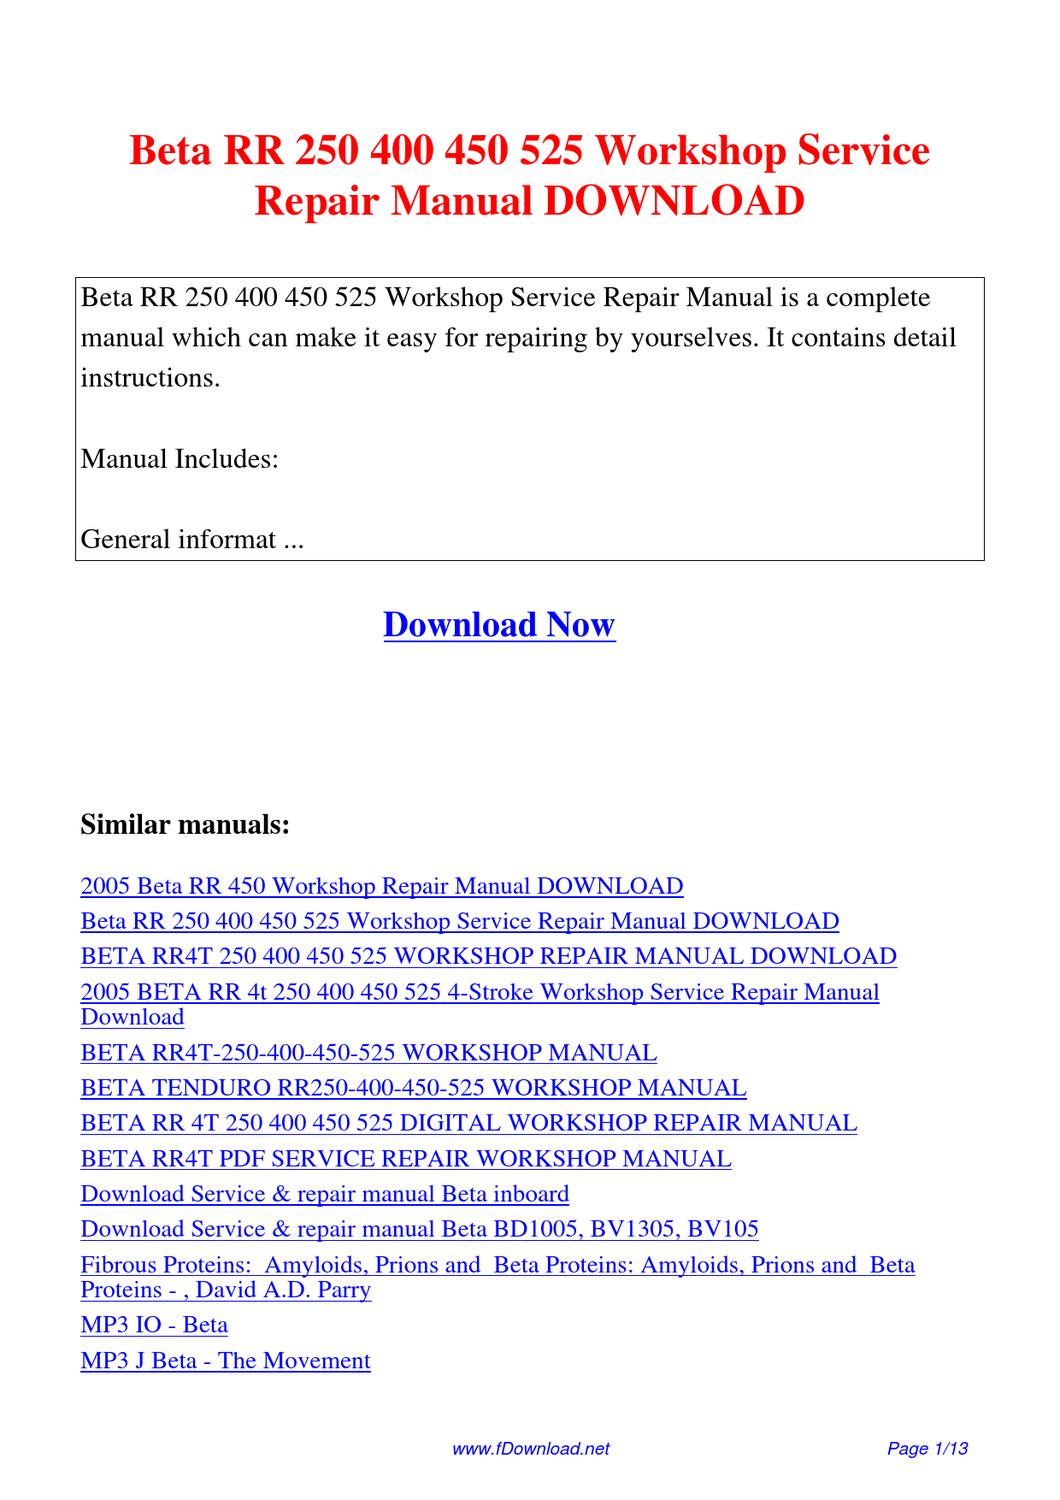 Beta_RR_250_400_450_525_Workshop_Service_Repair_Manual by Sam Lang - issuu